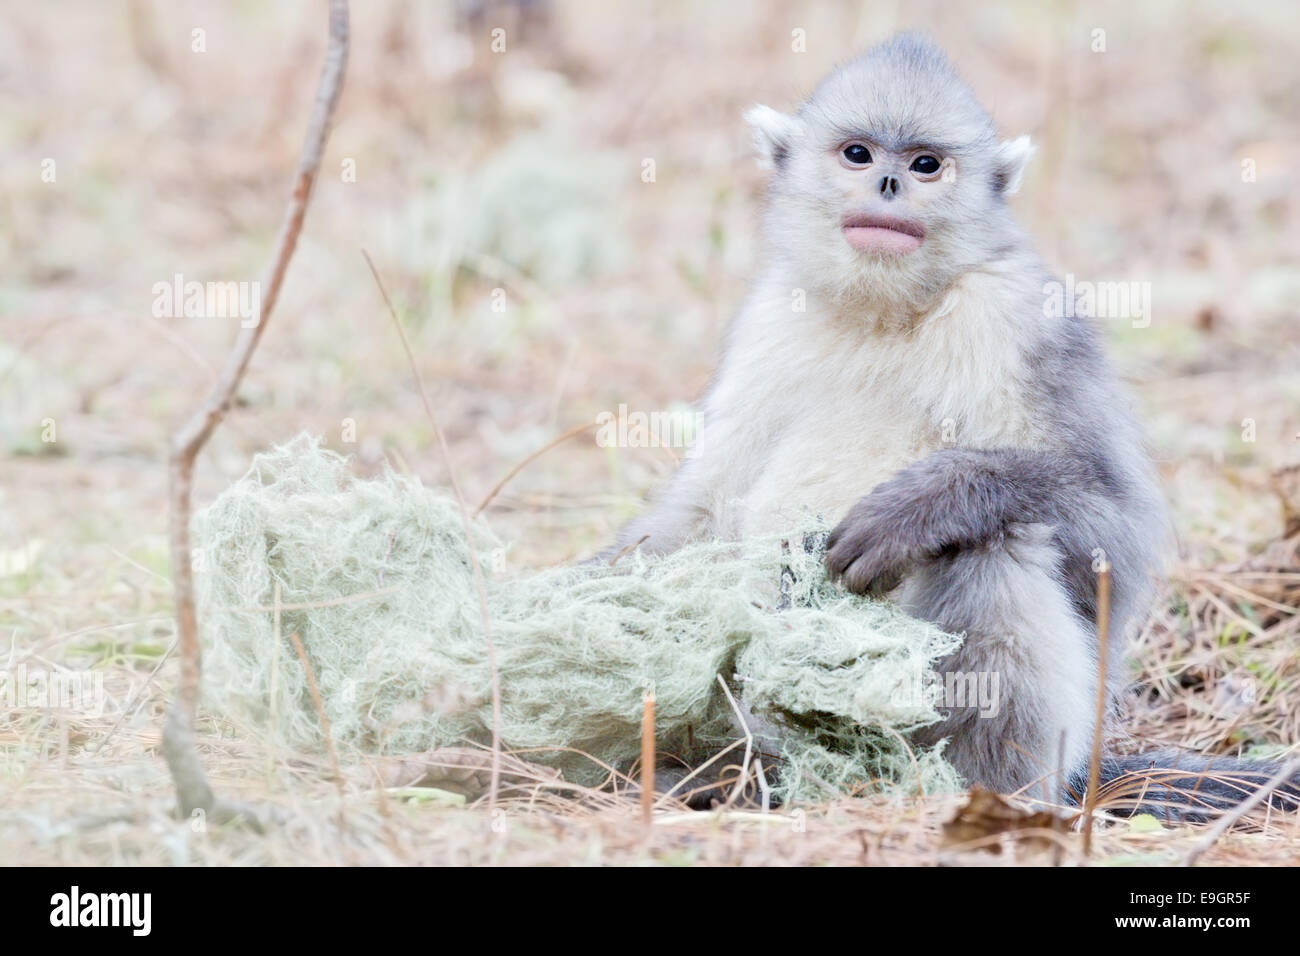 Juvenile Yunnan Snub-nosed Monkey (Rhinopithecus bieti) taking a rest from boisterous play to feed - Stock Image